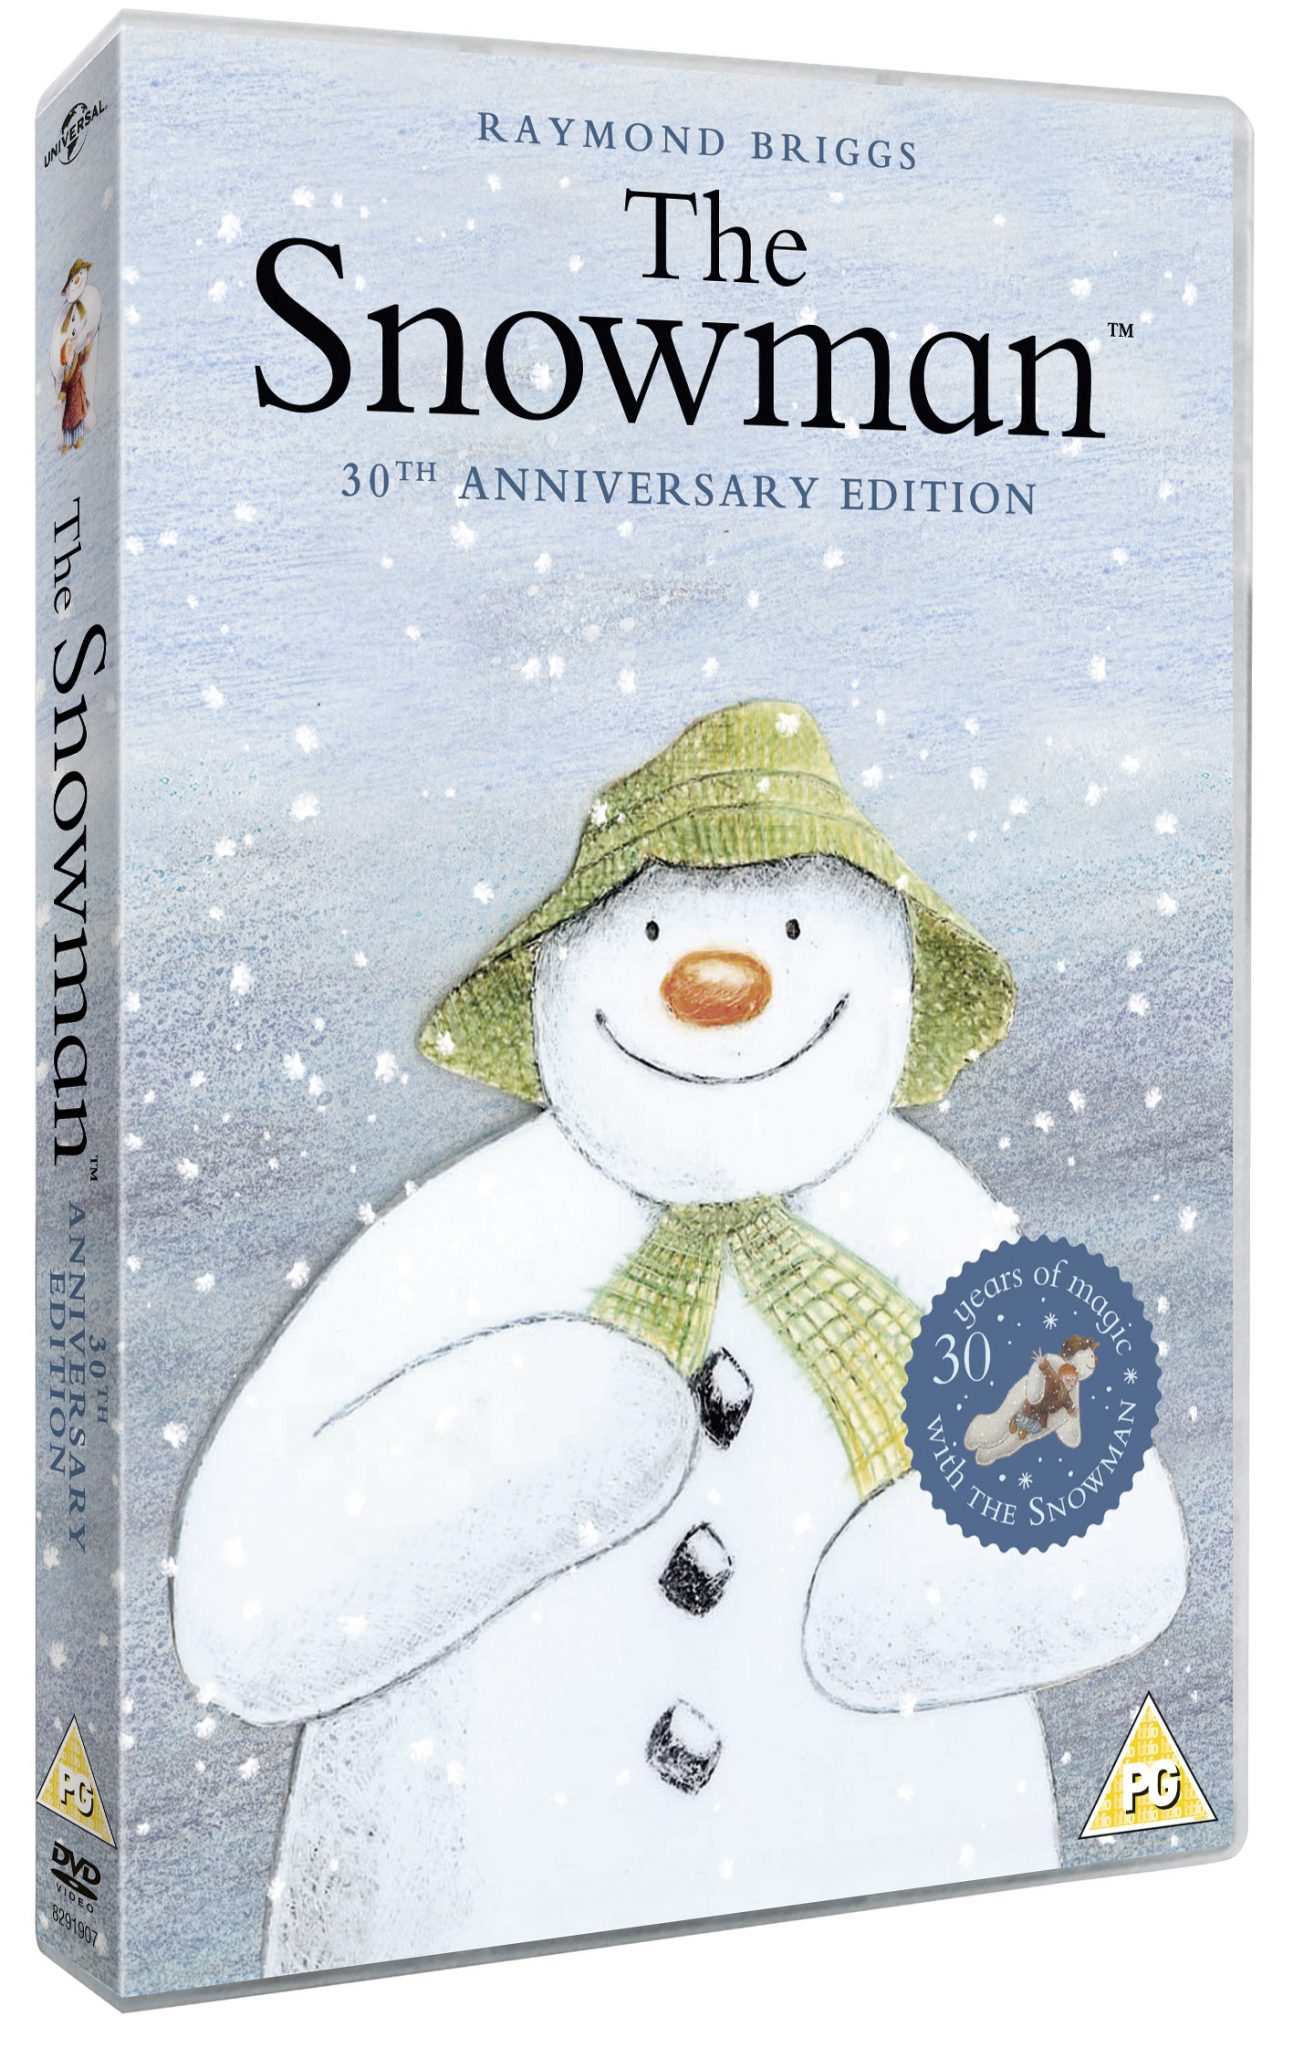 The Snowman 30th anniversry edition.